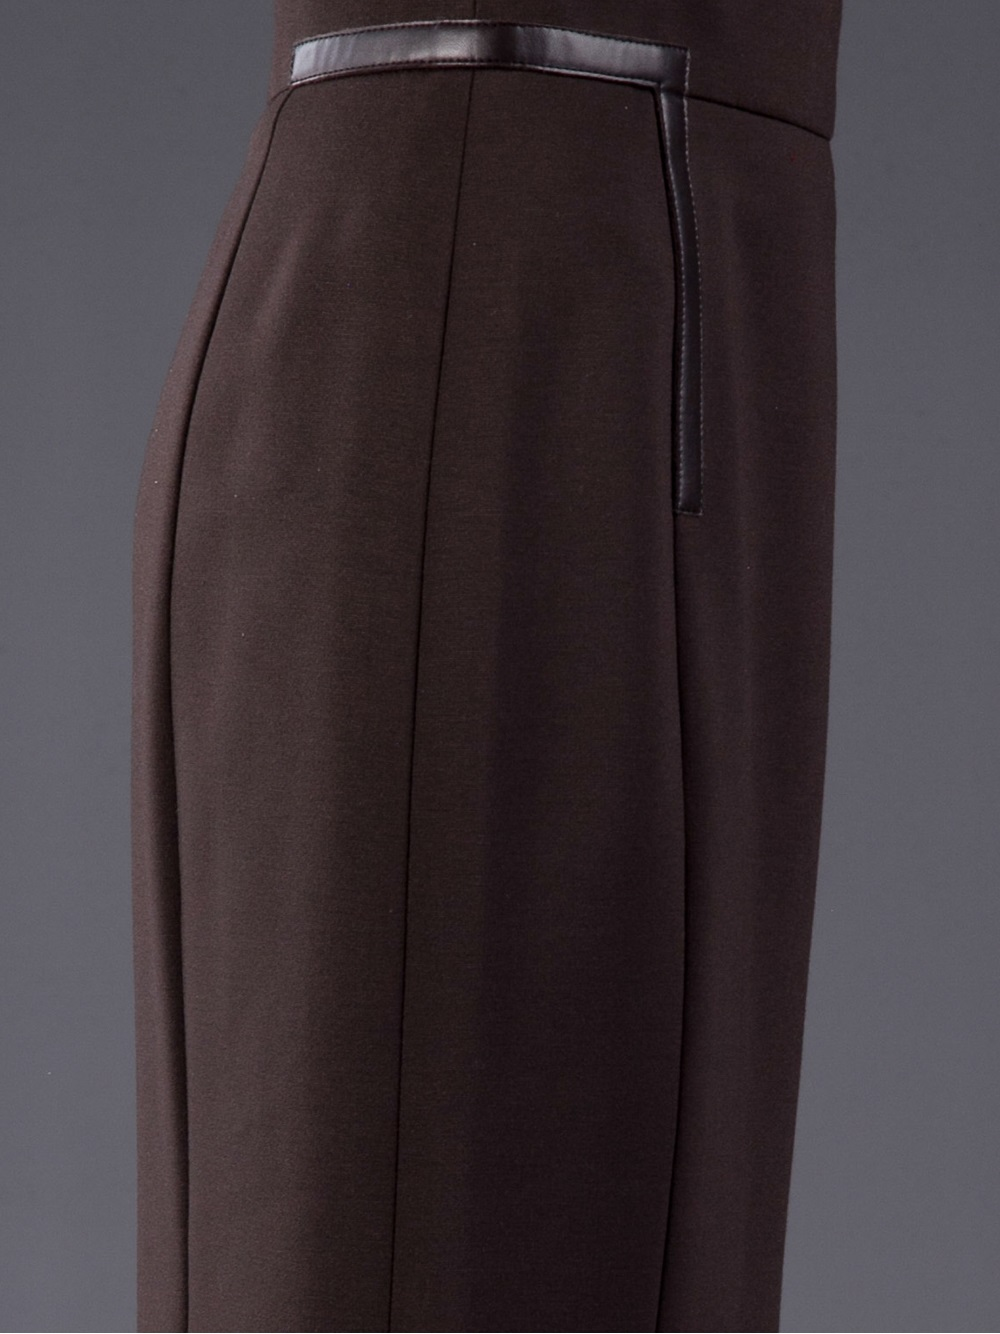 akris punto leather trim fitted skirt in brown lyst